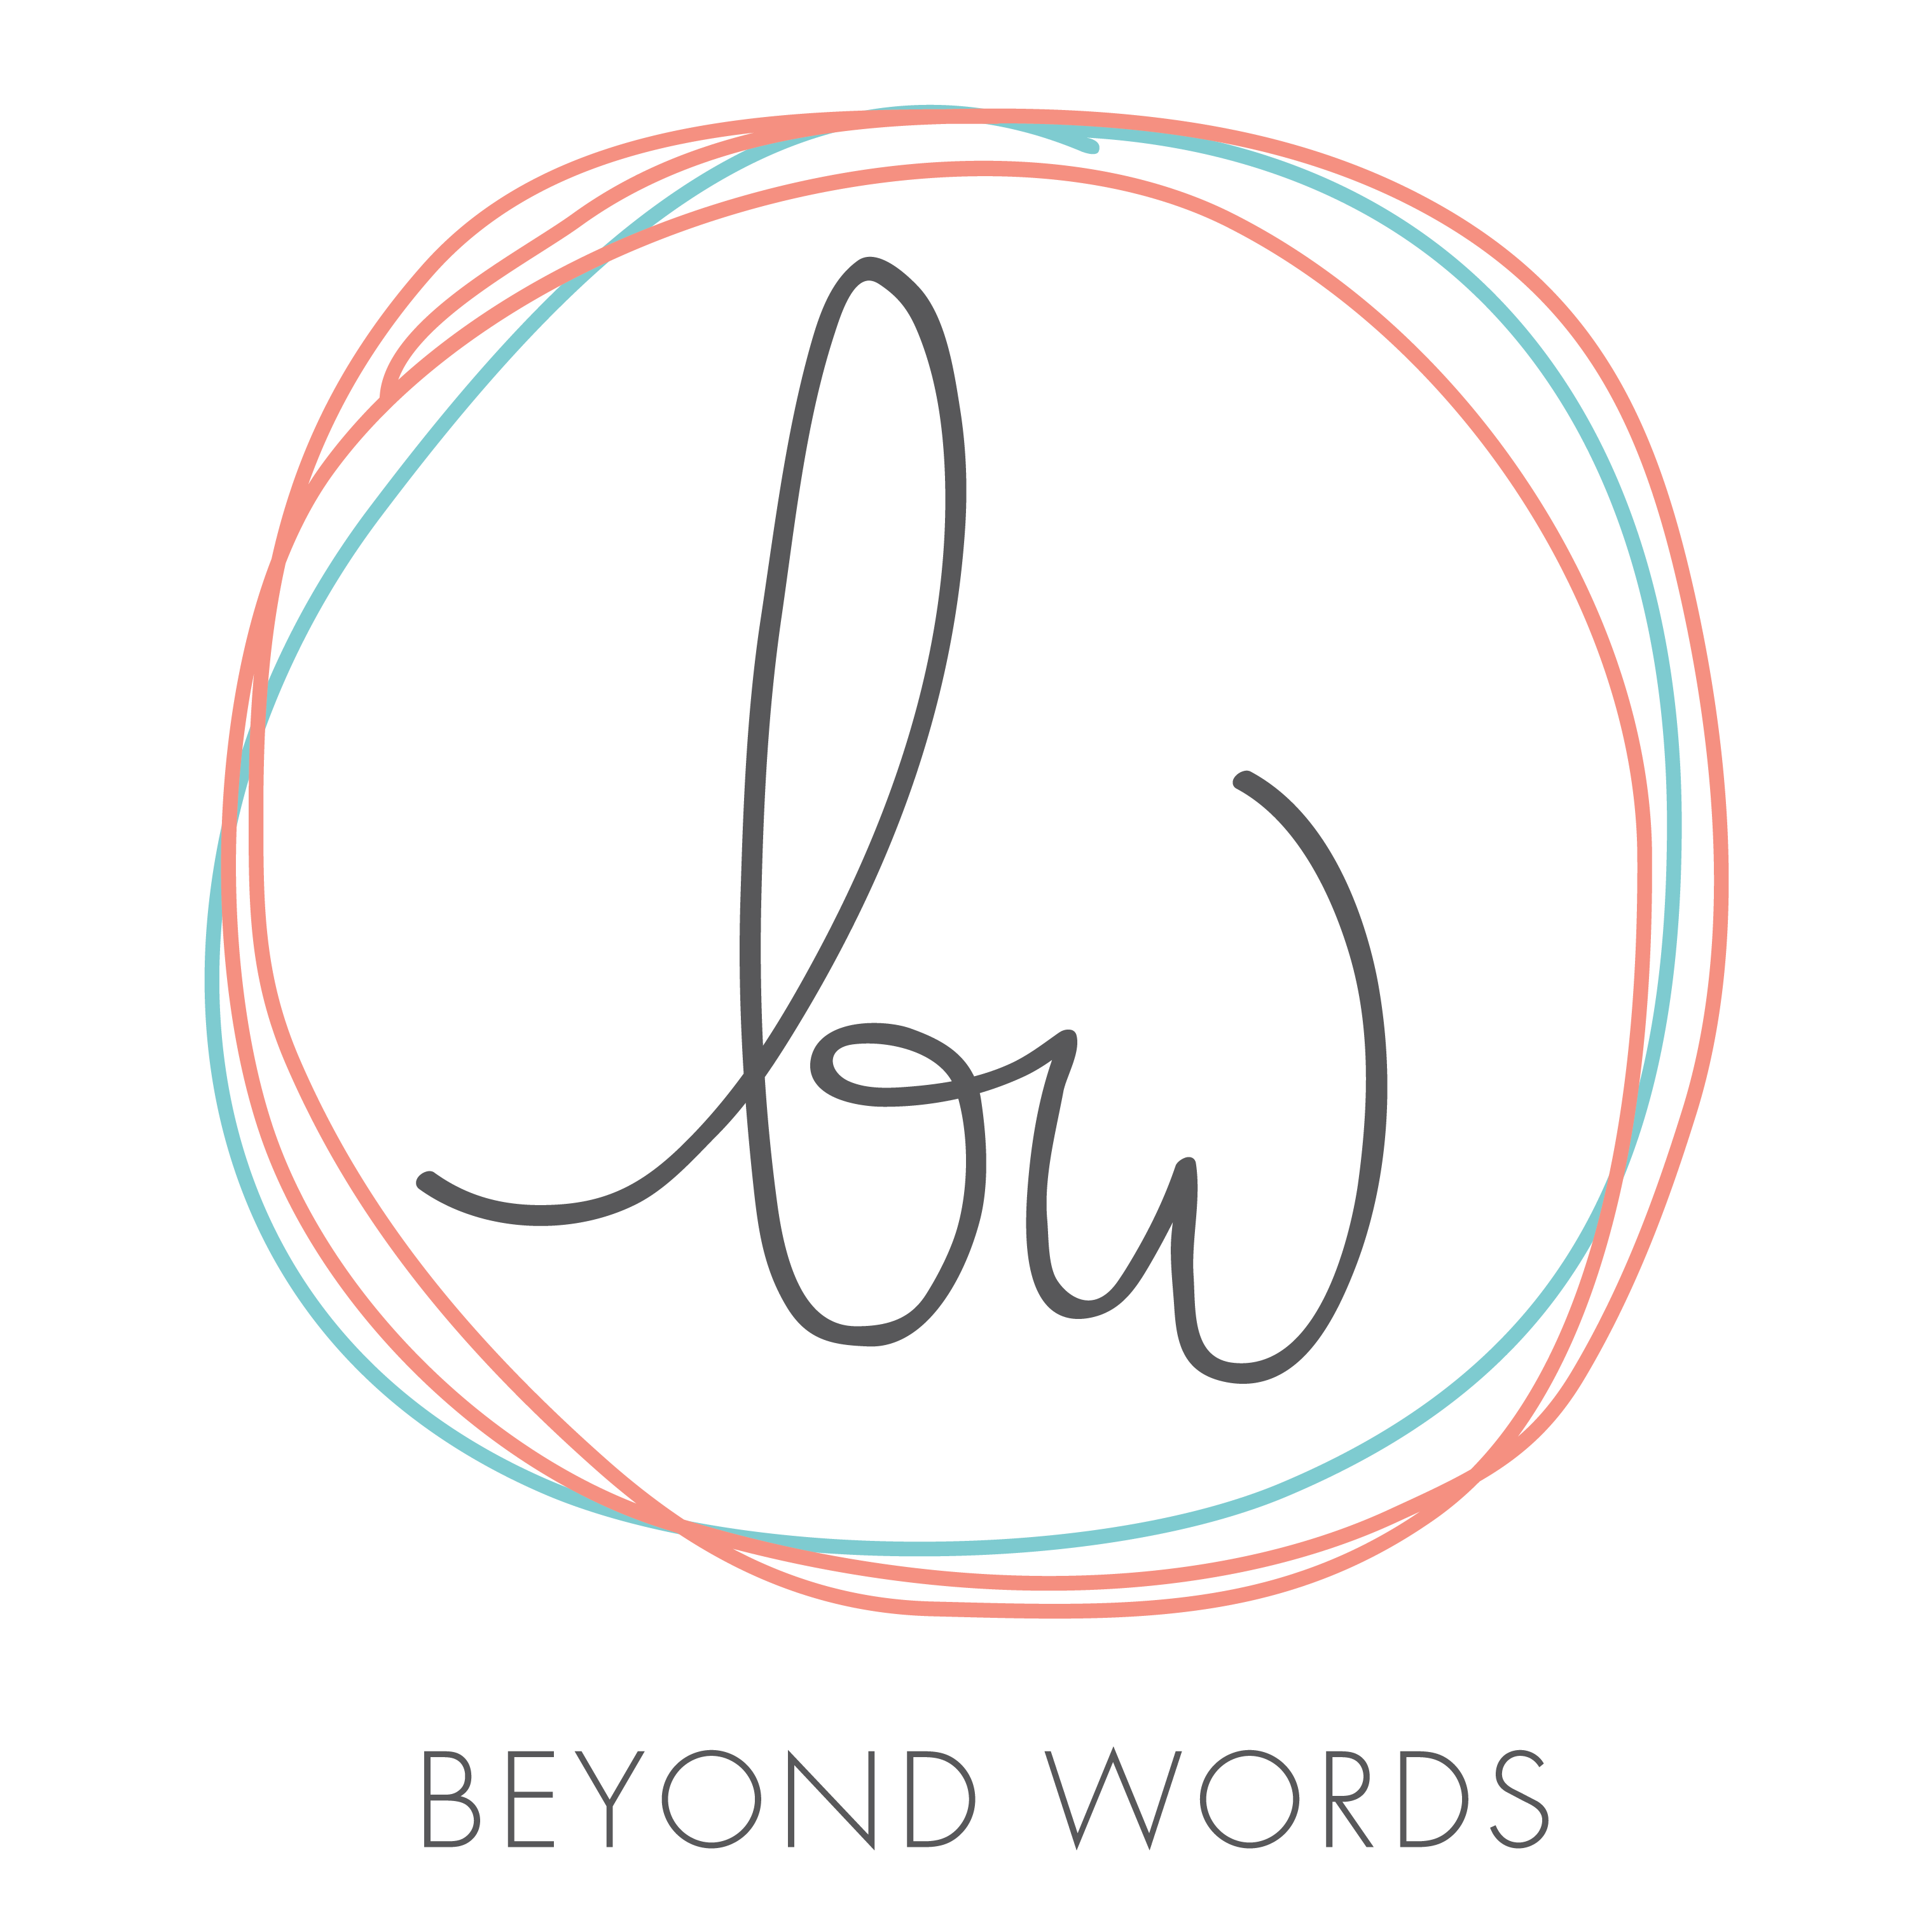 Beyond Words - Travel, Entertainment, Wellness, Style